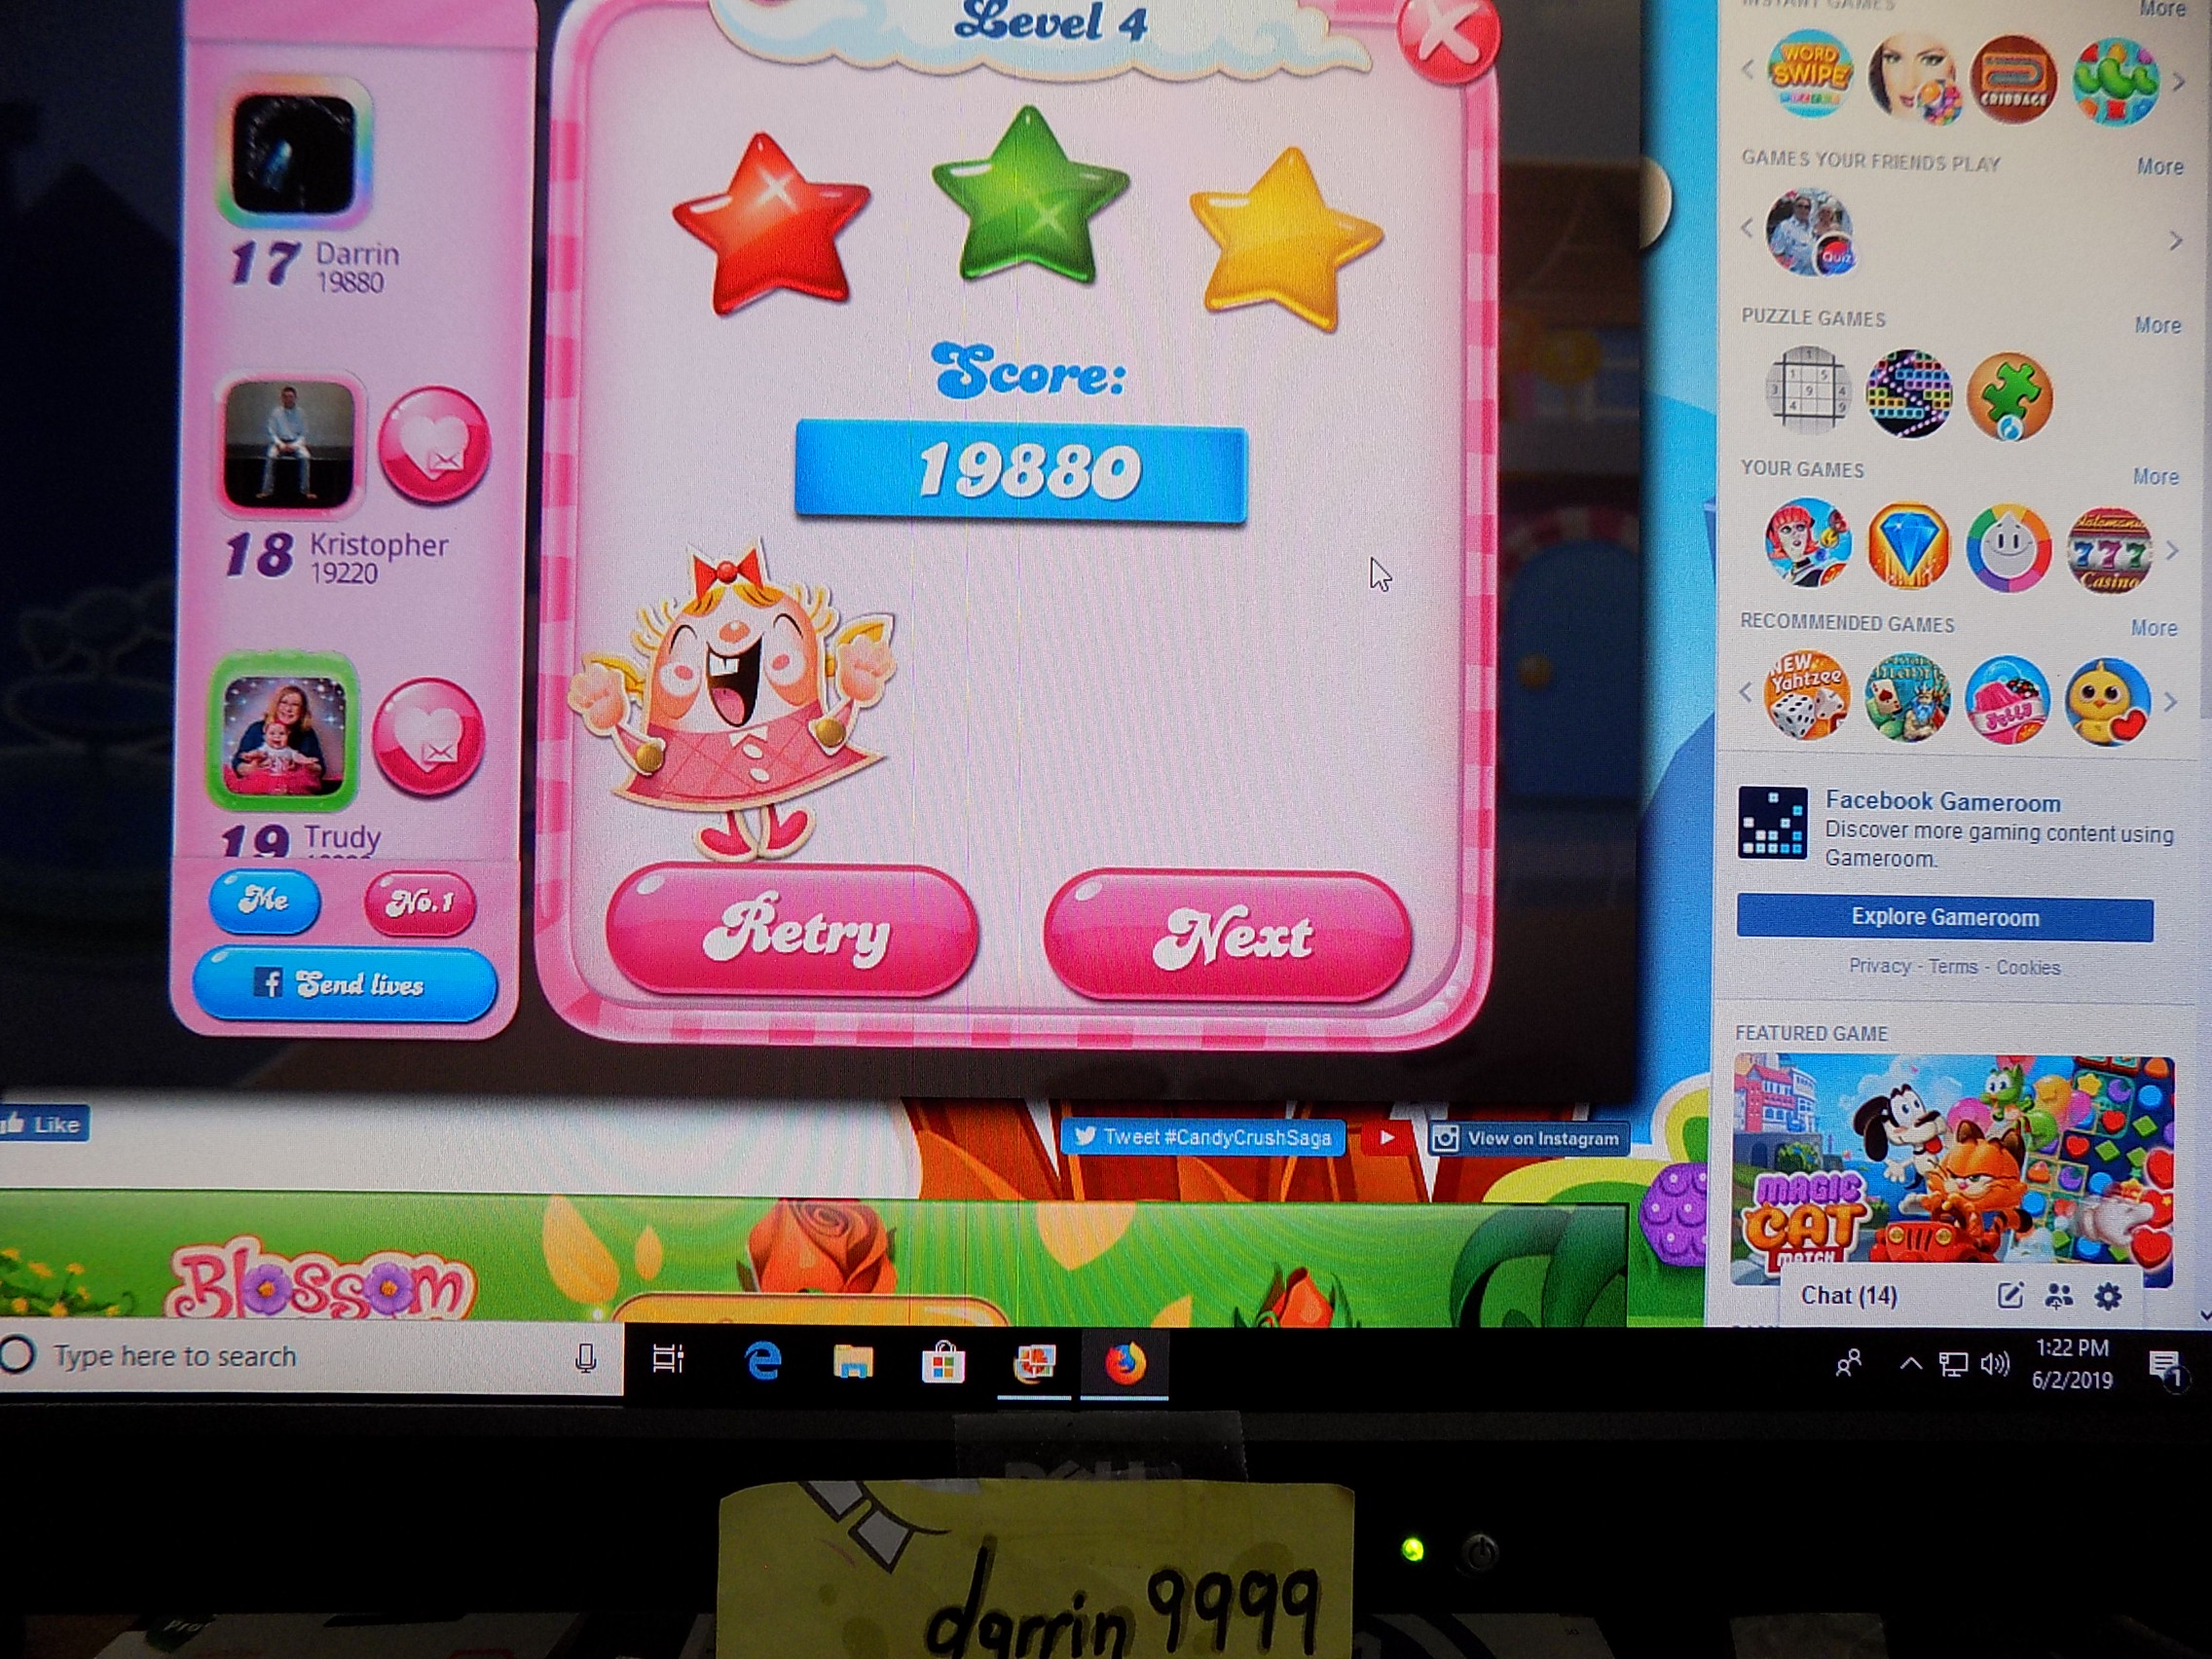 darrin9999: Candy Crush Saga: Level 004 (Web) 19,880 points on 2019-06-02 12:36:49